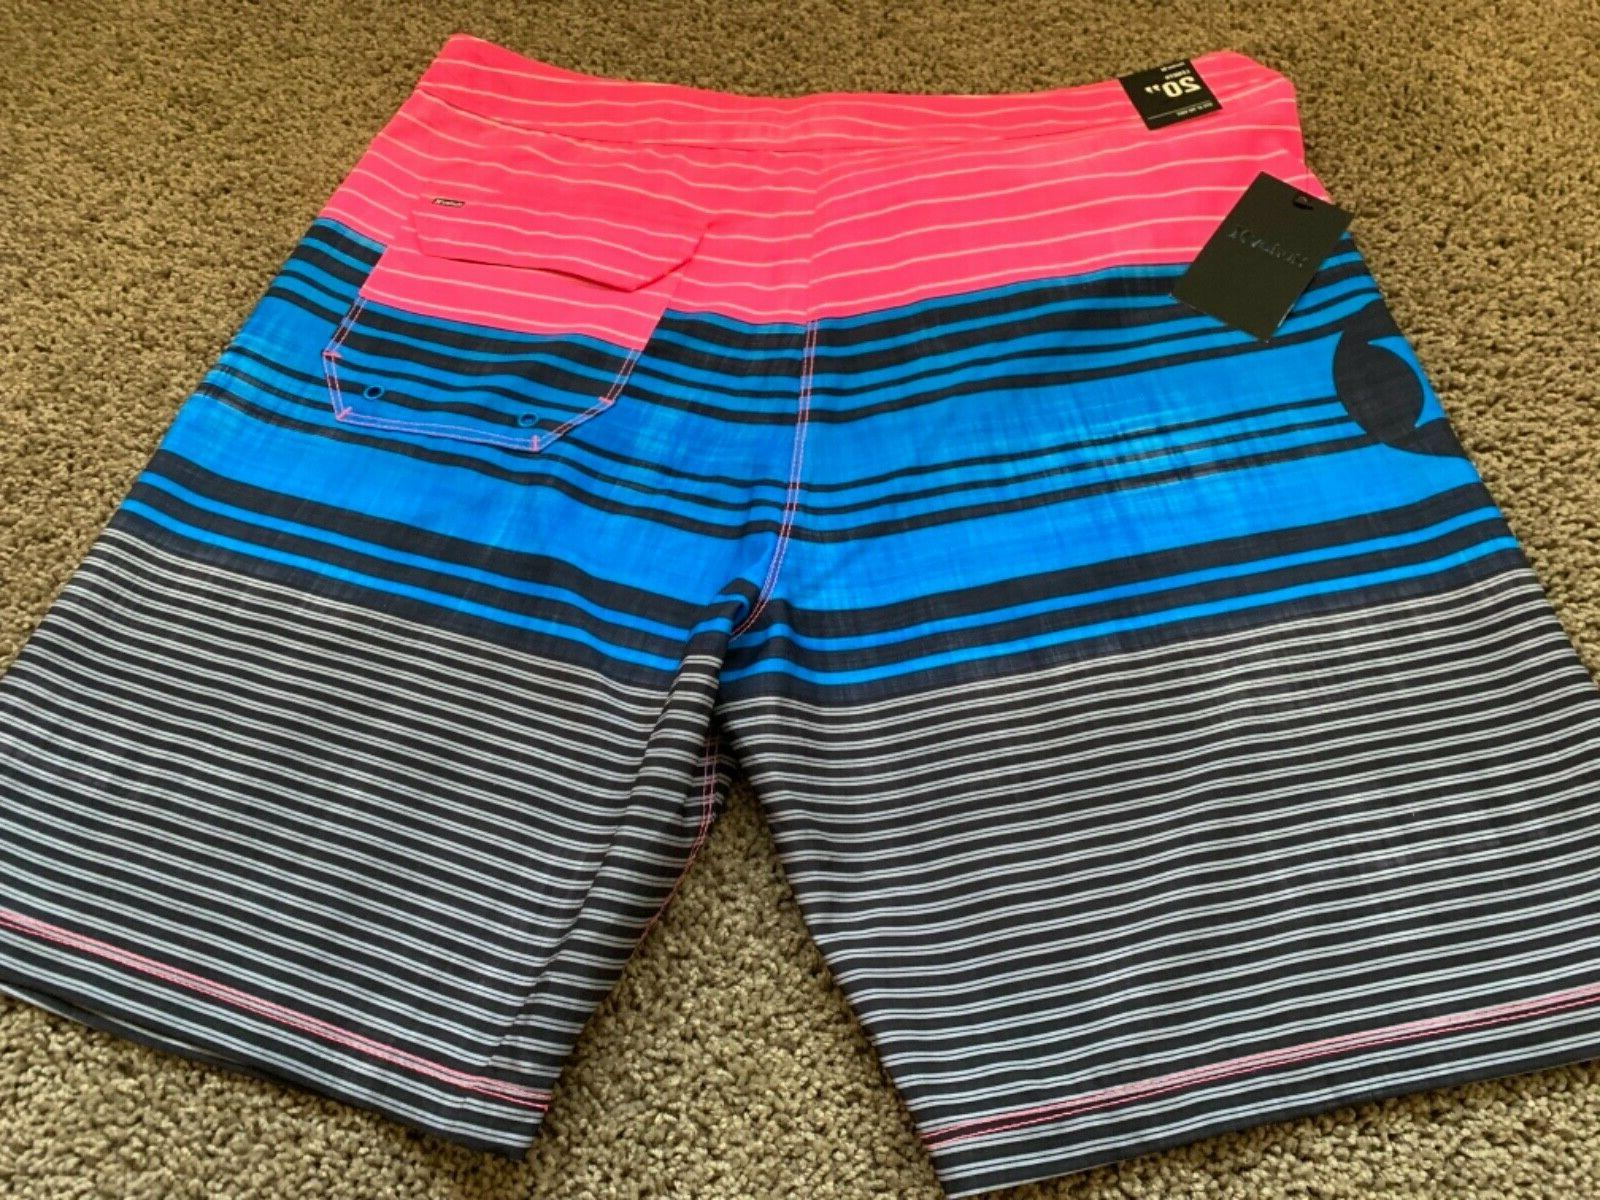 SS PINK BLUE MENS BOARD 30 32 33 34 x